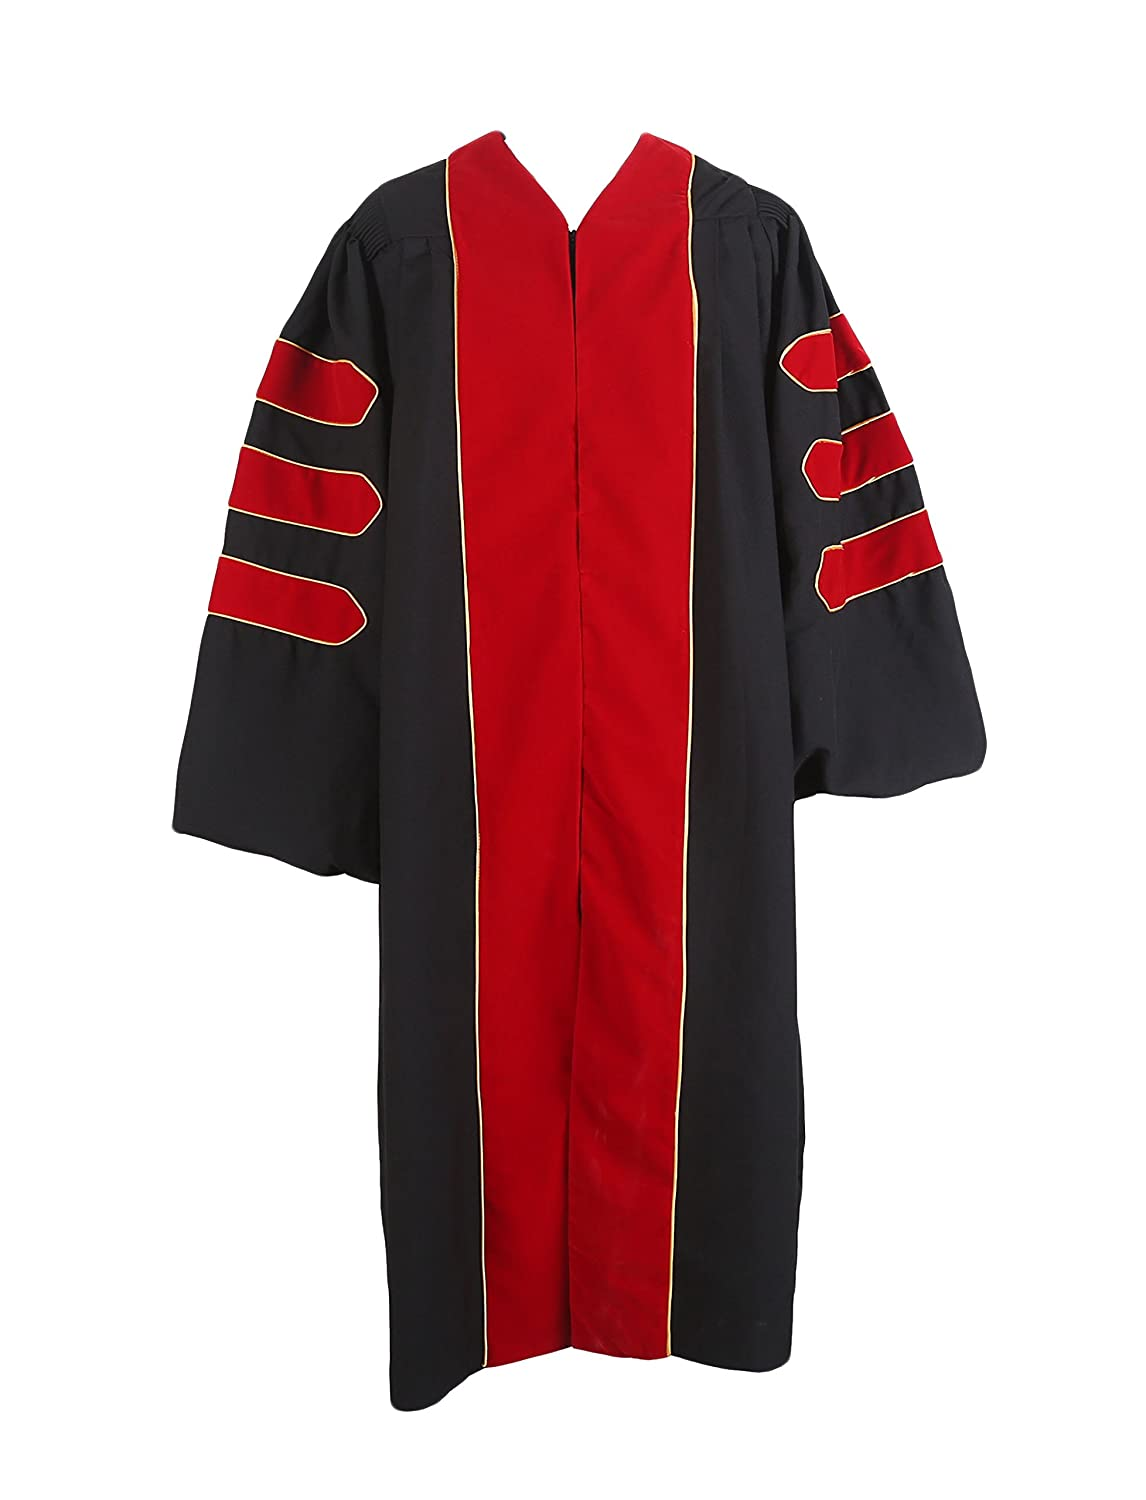 GraduationService Deluxe Doctoral Graduation Gown With Gold Piping Unisex